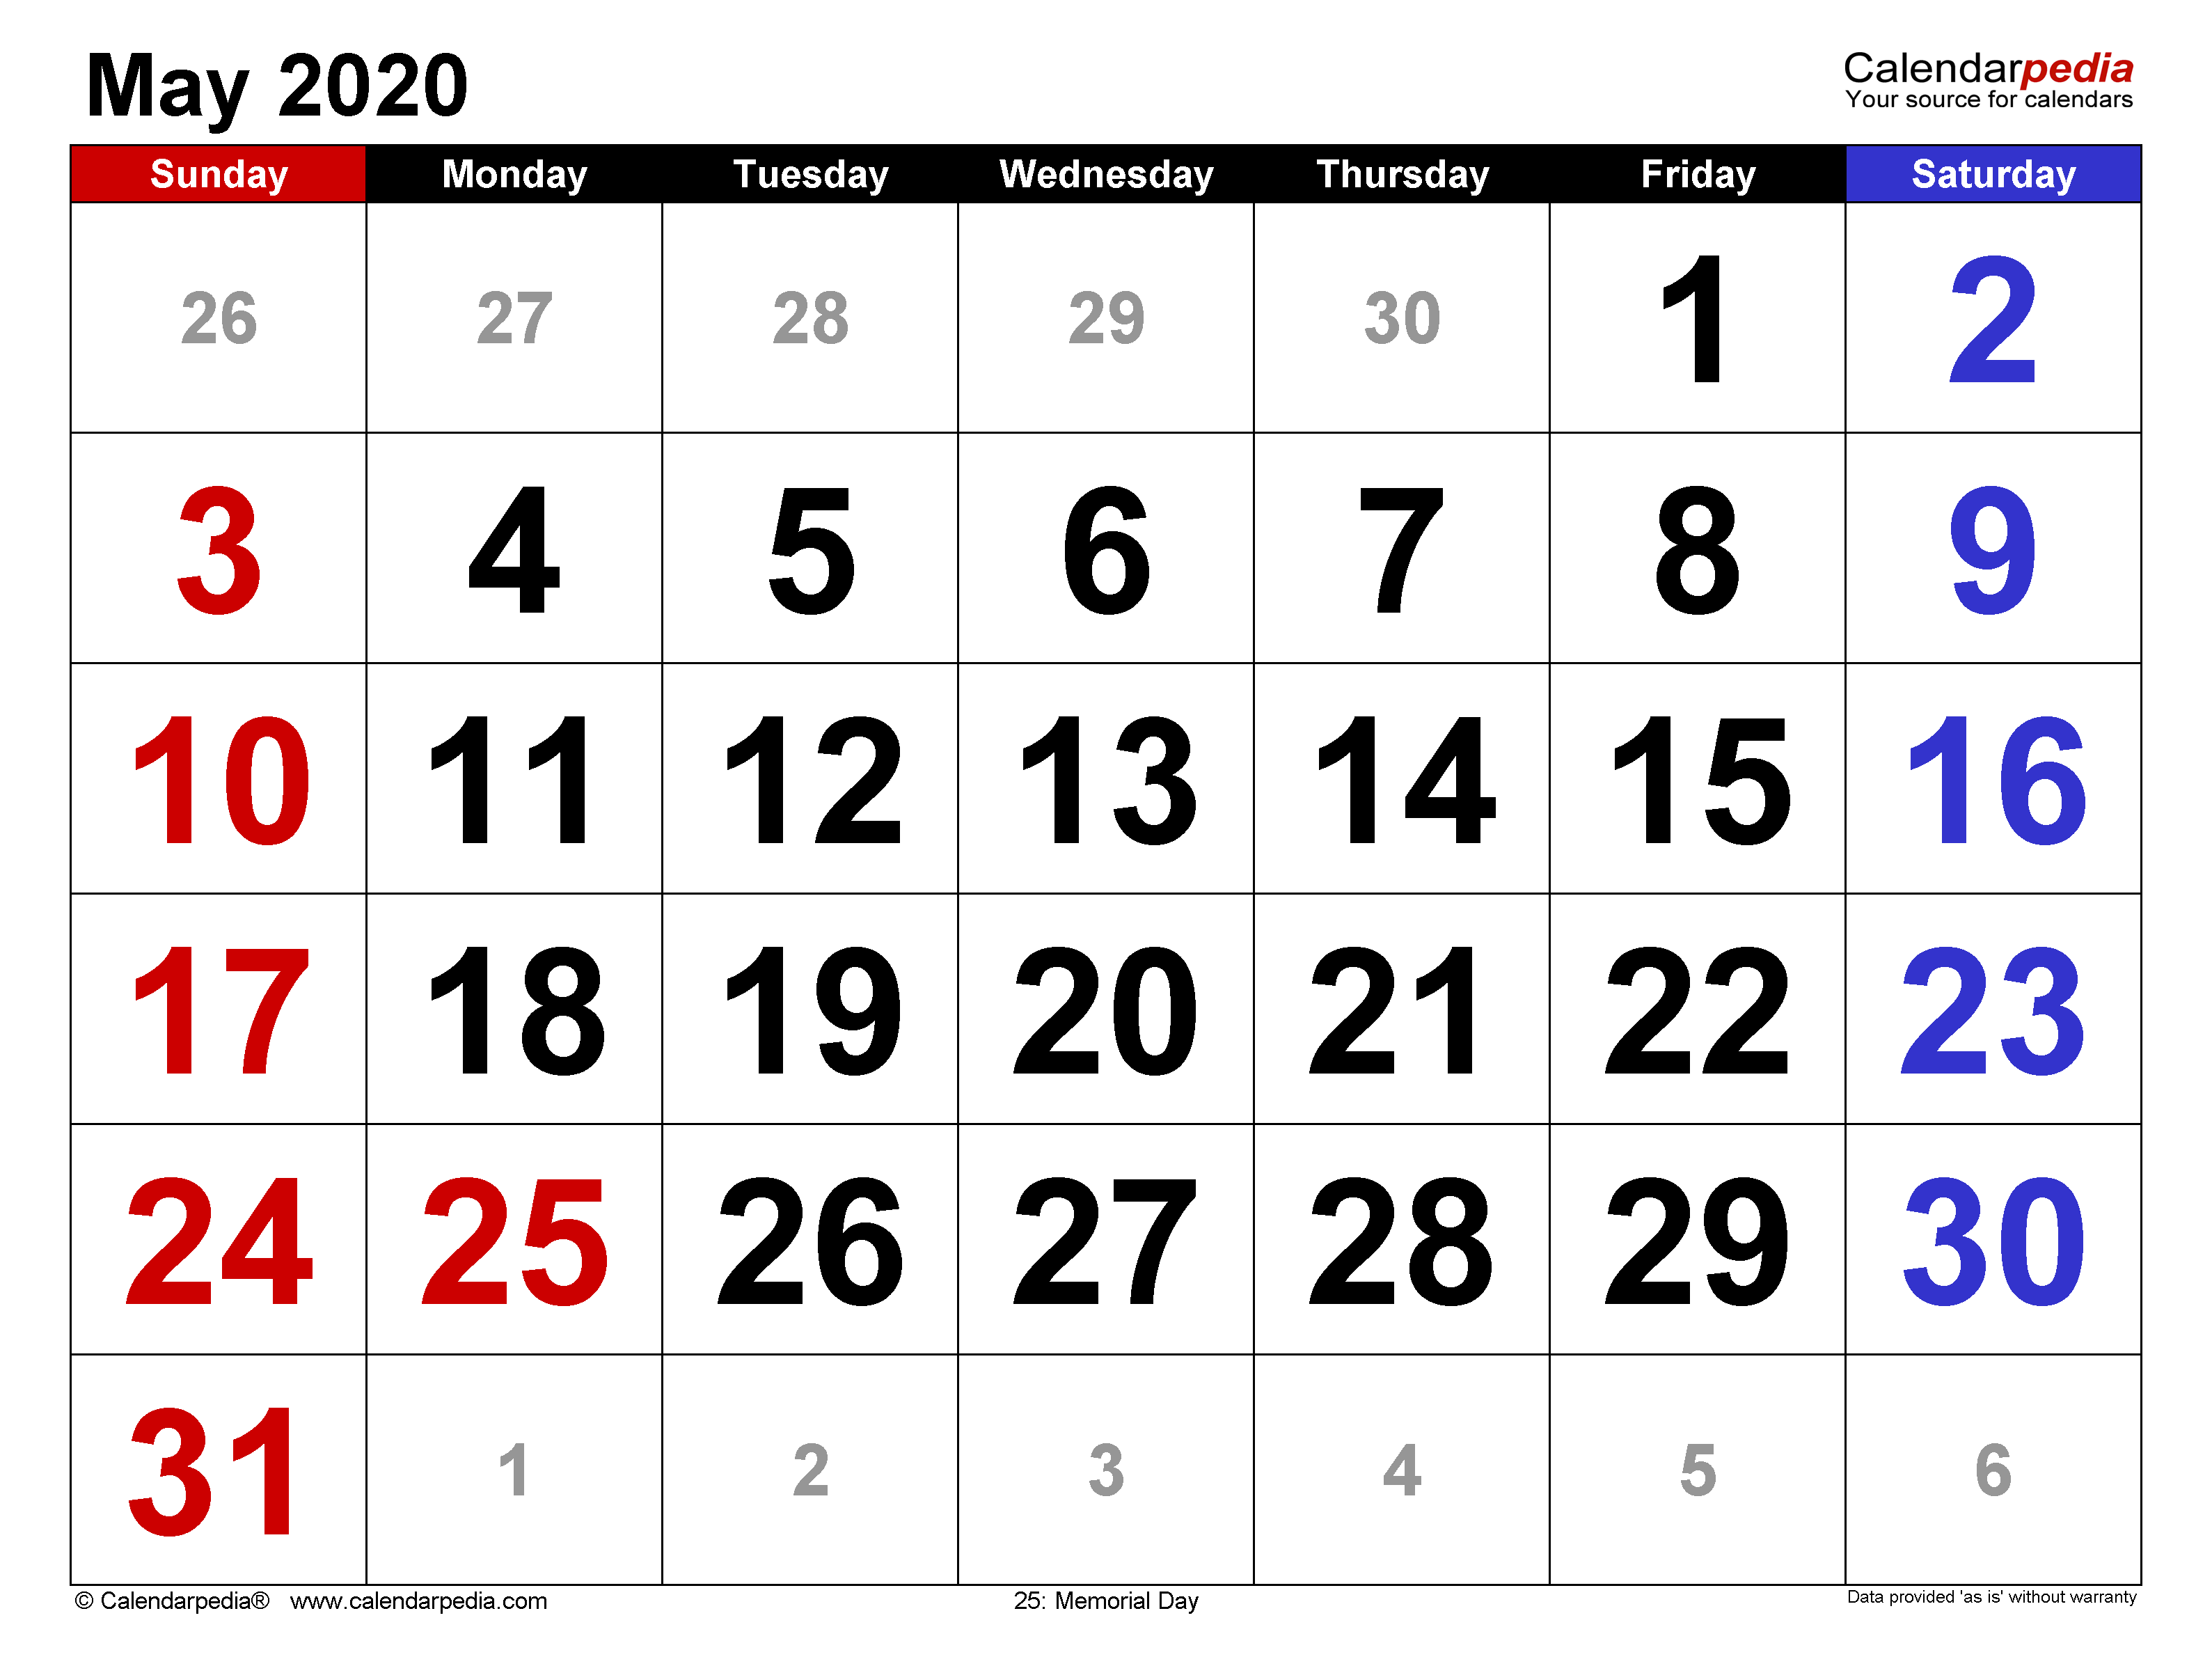 May 2020 Calendar Templates For Word Excel And Pdf